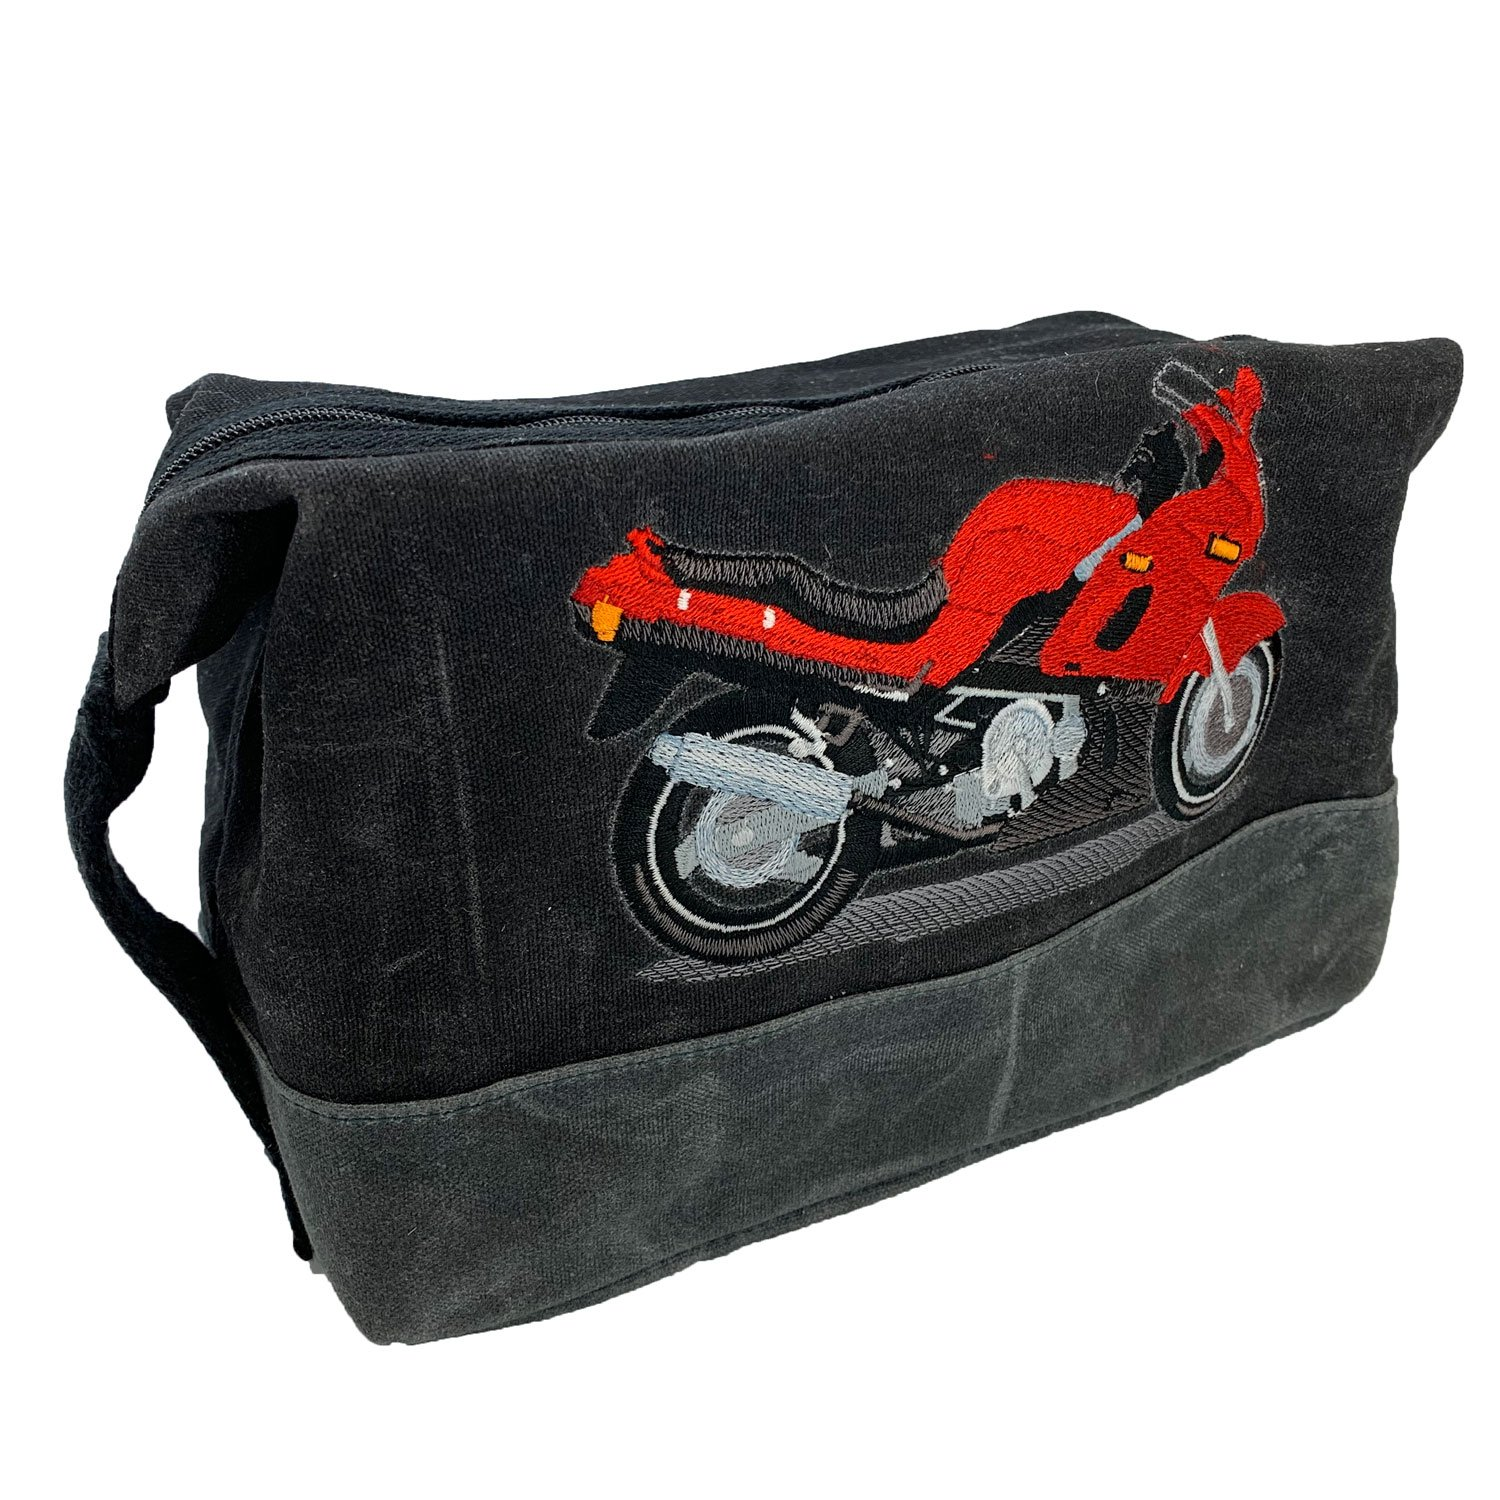 Embroidered Waxed Canvas Street Motorcycle